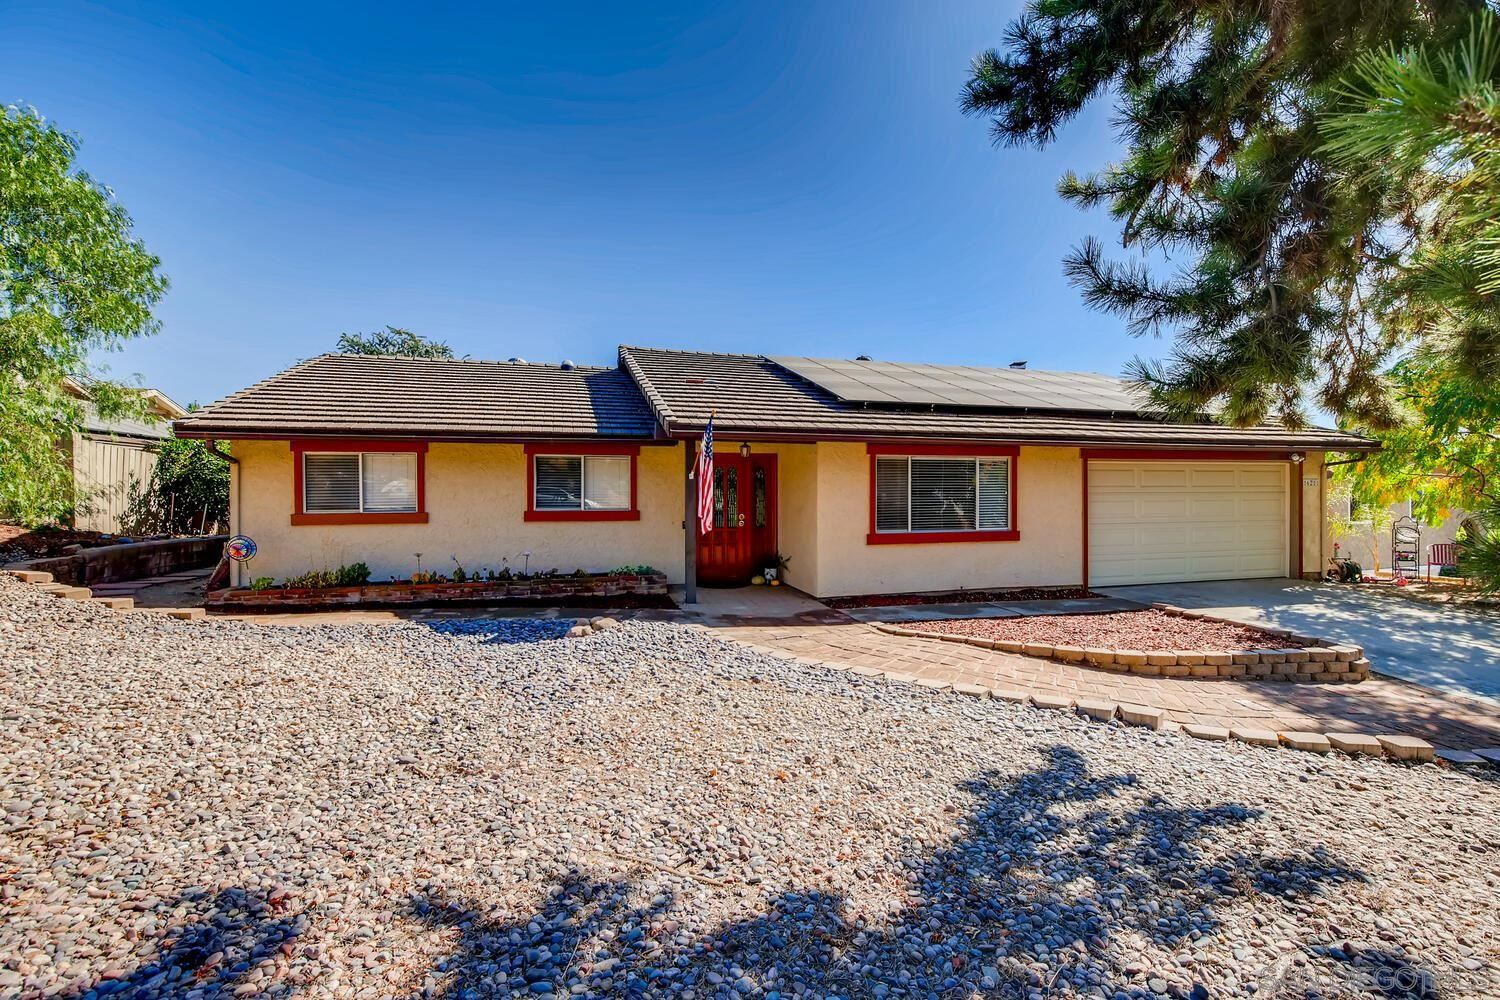 Photo of 16211 Oak Springs Dr, Ramona, CA 92065 (MLS # 200049315)